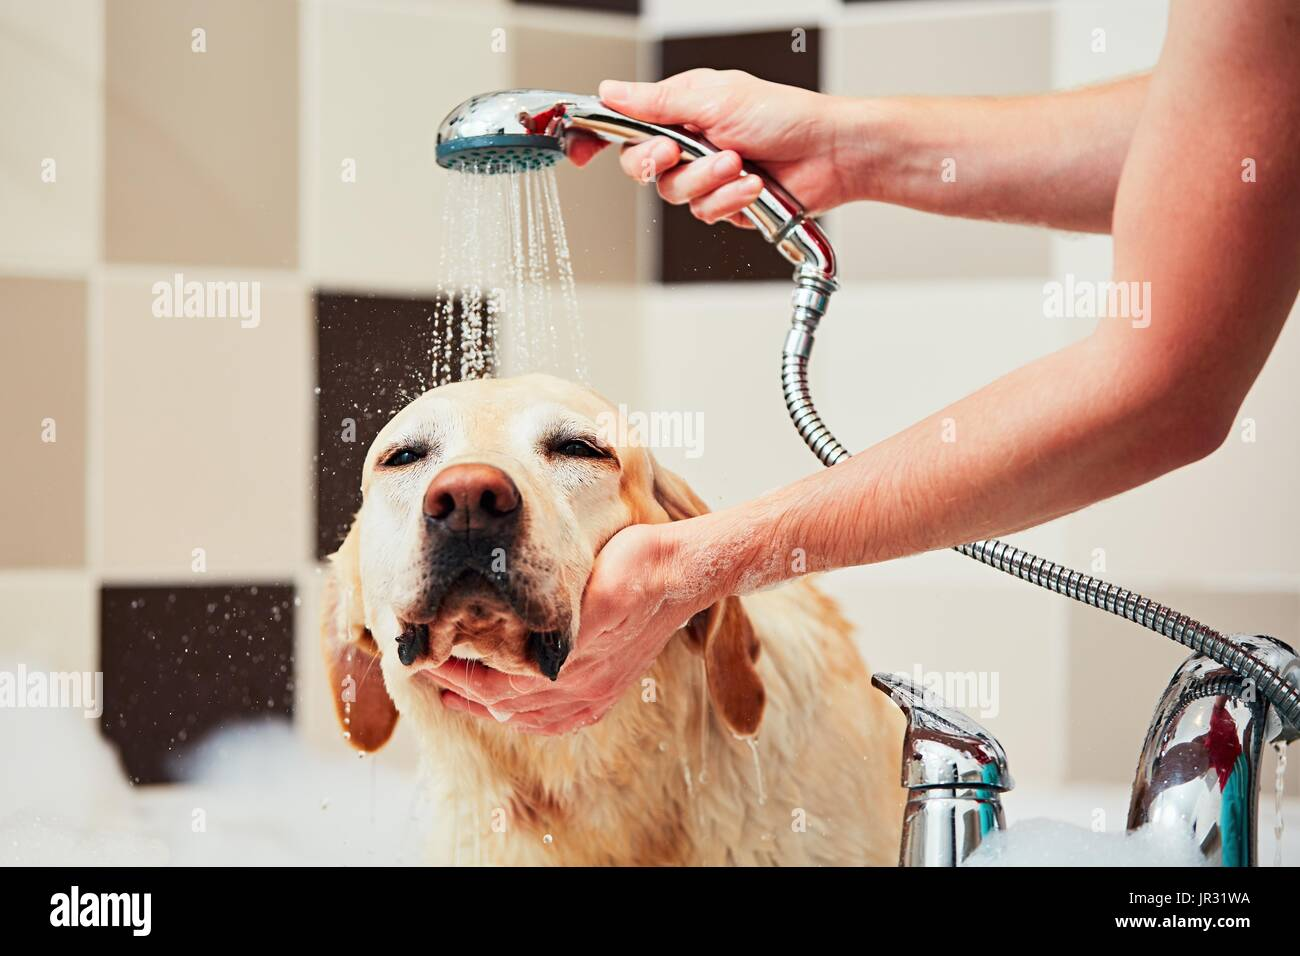 a personal recount about bathing a dog At age 80 she is a personal trainer  velvet went bathing suit shopping that her view changed witnesses recount texas school shooting.